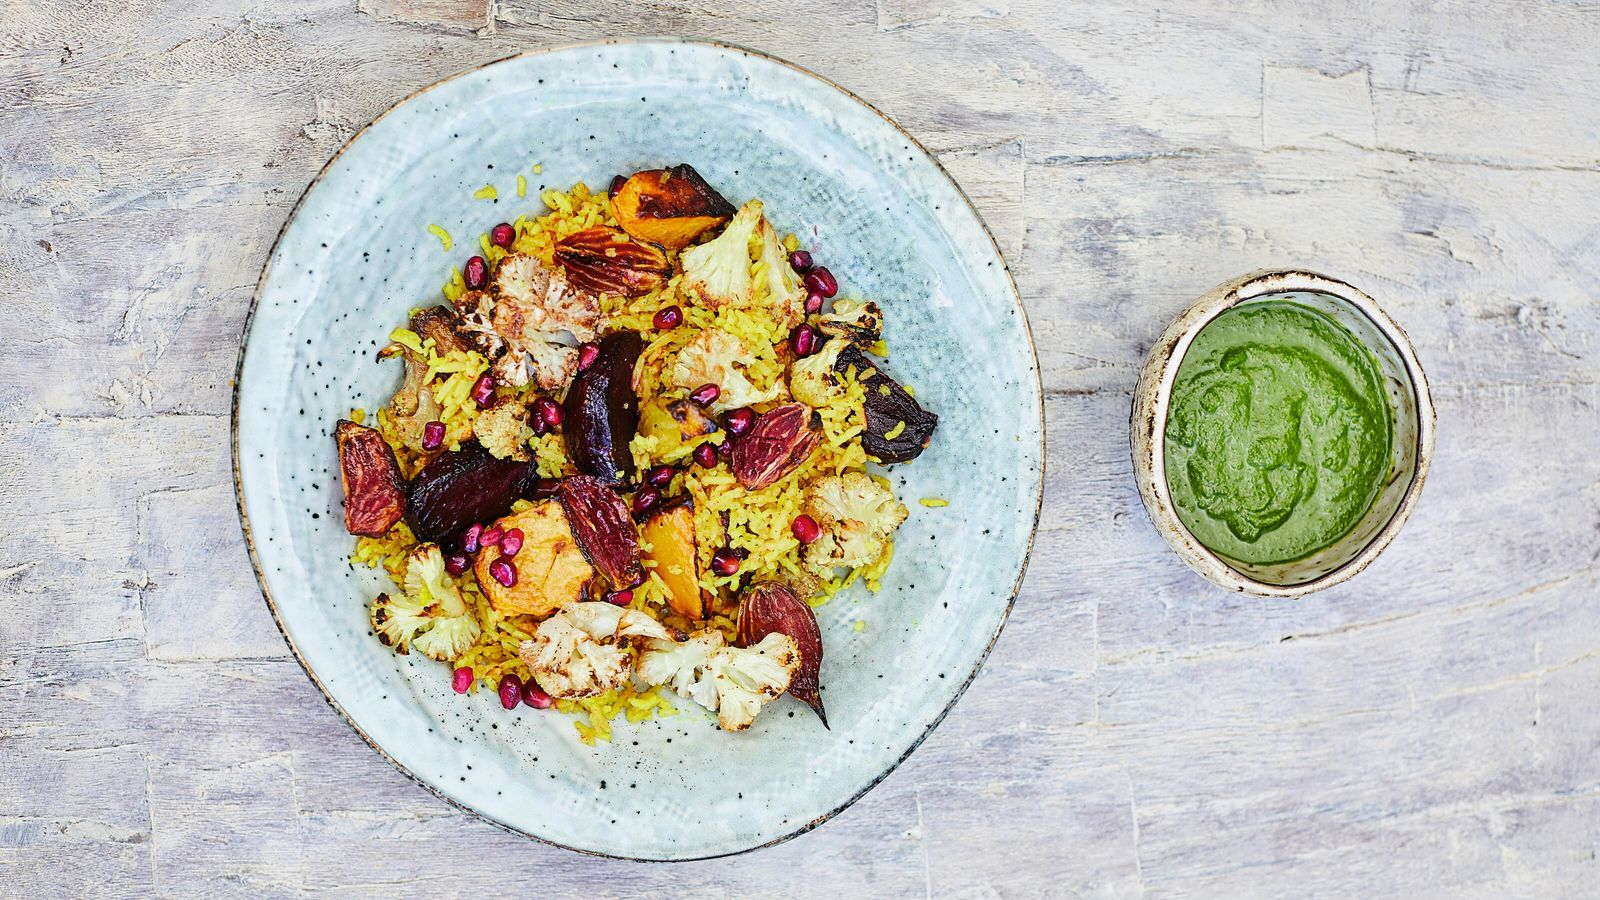 Meera Sodha's winter pilau is packed with beetroot, cauliflower, swede and spices.